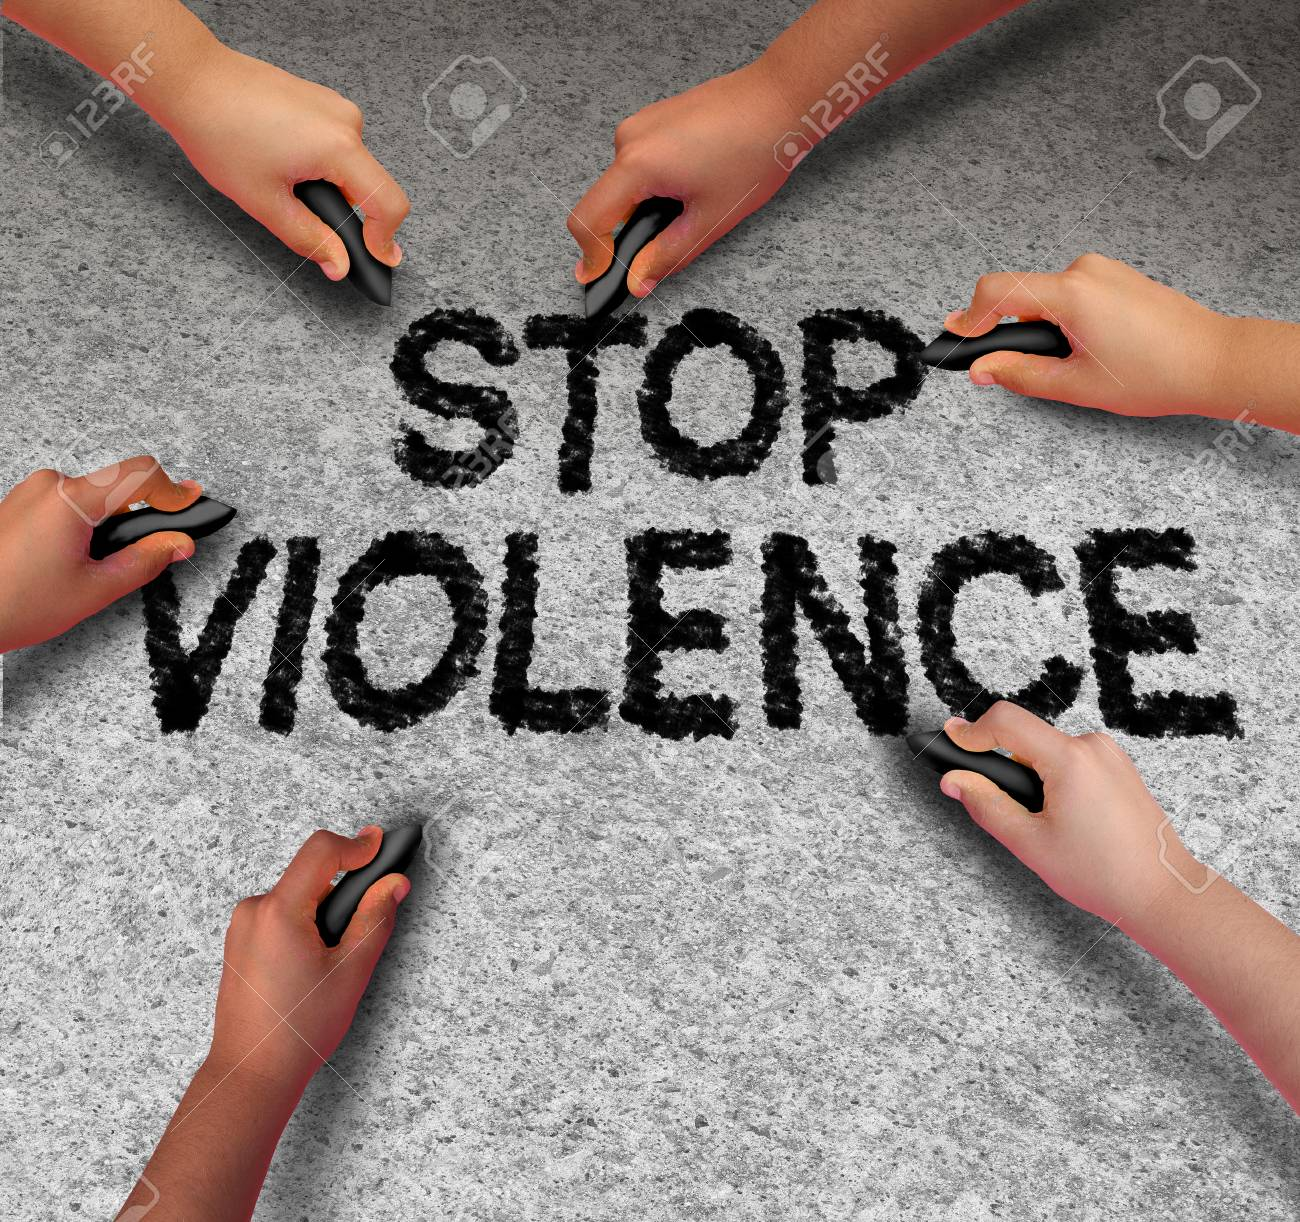 Stop Violence Concept And Prevent An Assault As A Group Of Children